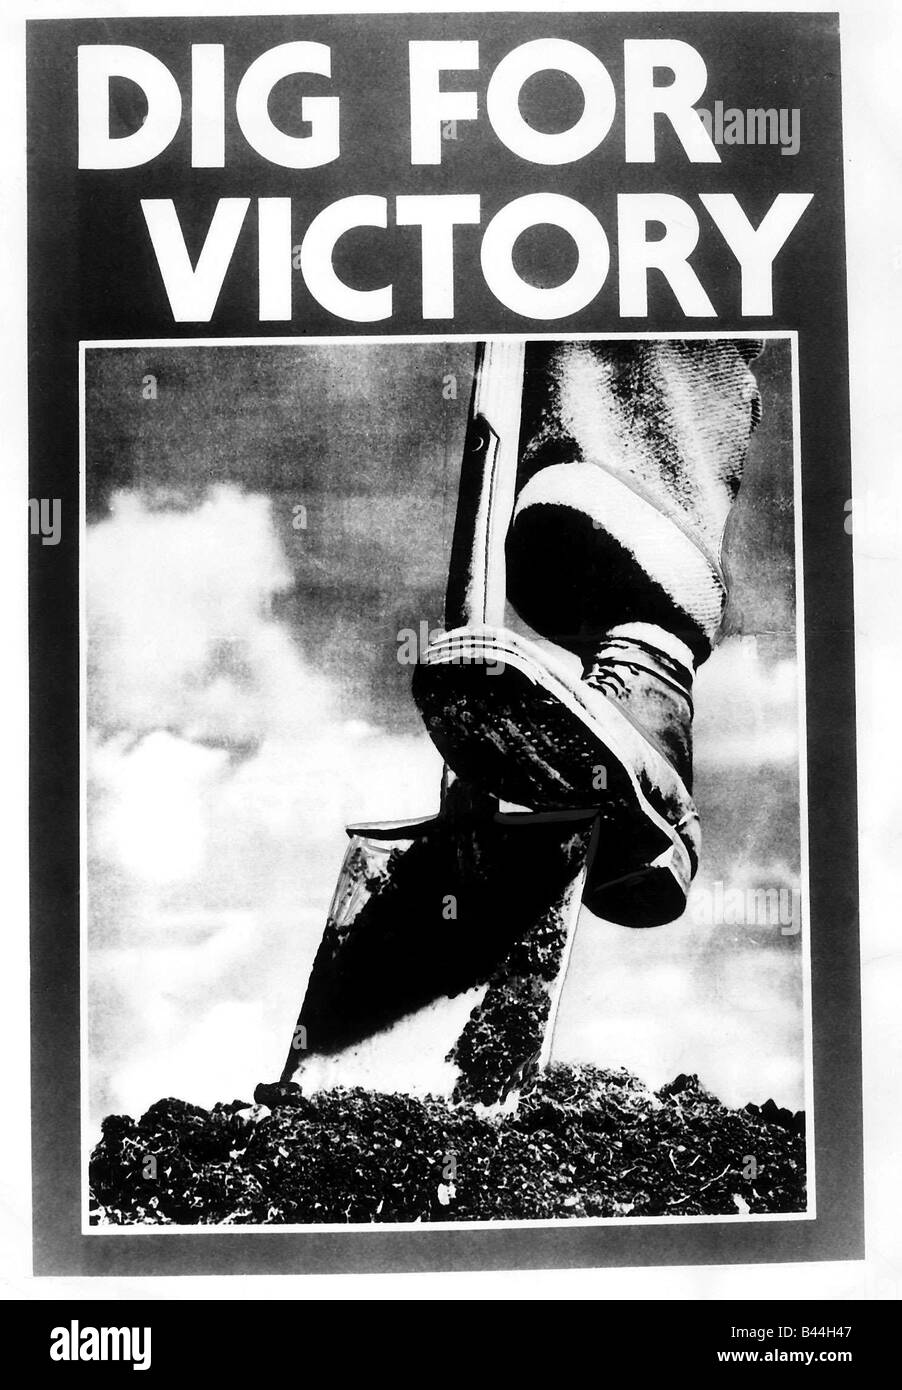 WW2 poster asking people to Dig For Victory - Stock Image